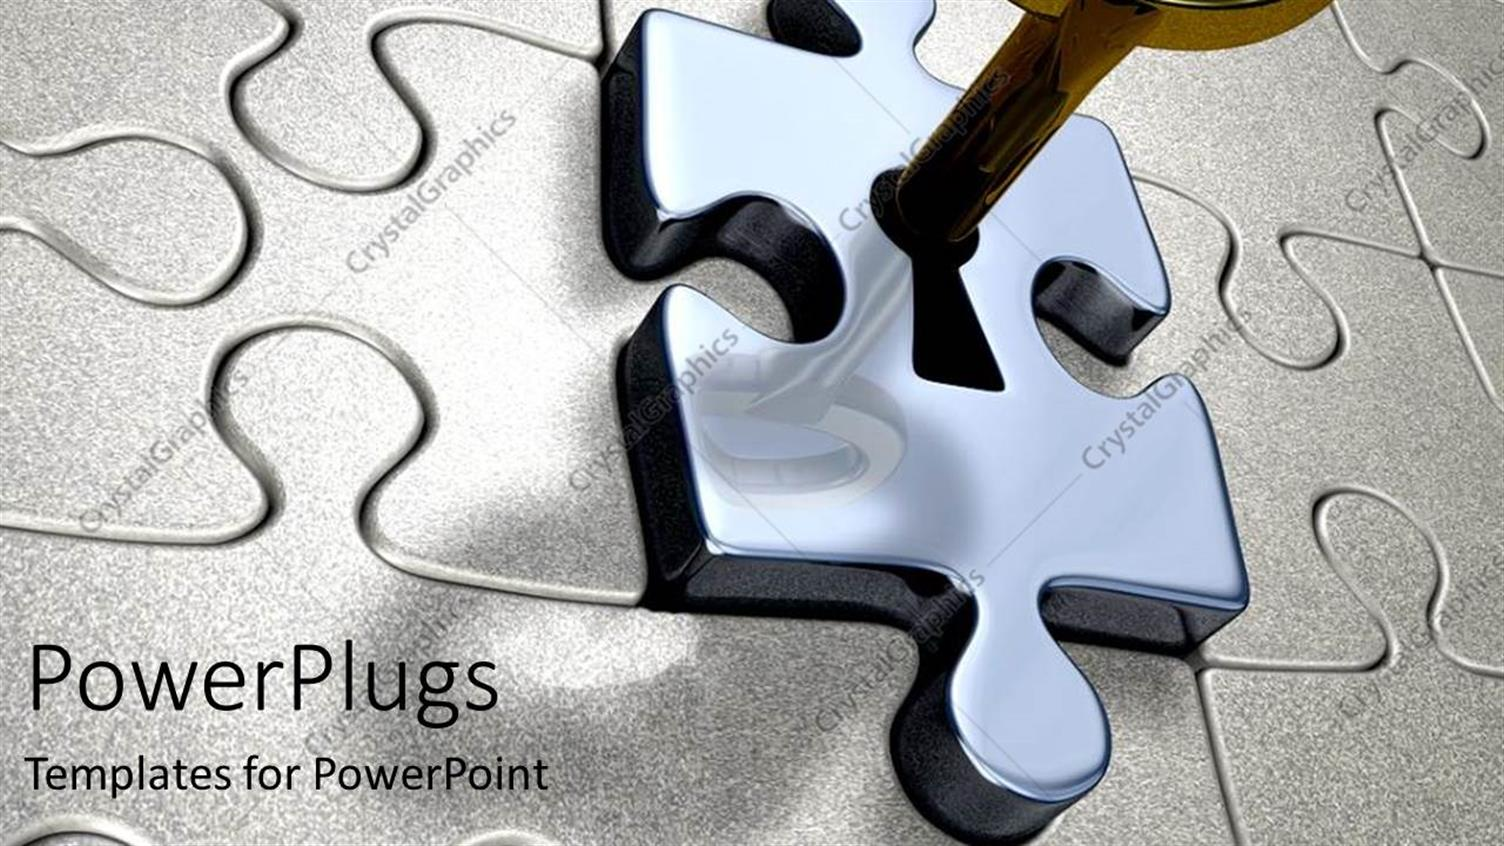 PowerPoint Template Displaying the Gold Key Unlocking the Silver Puzzle Lock Metaphor